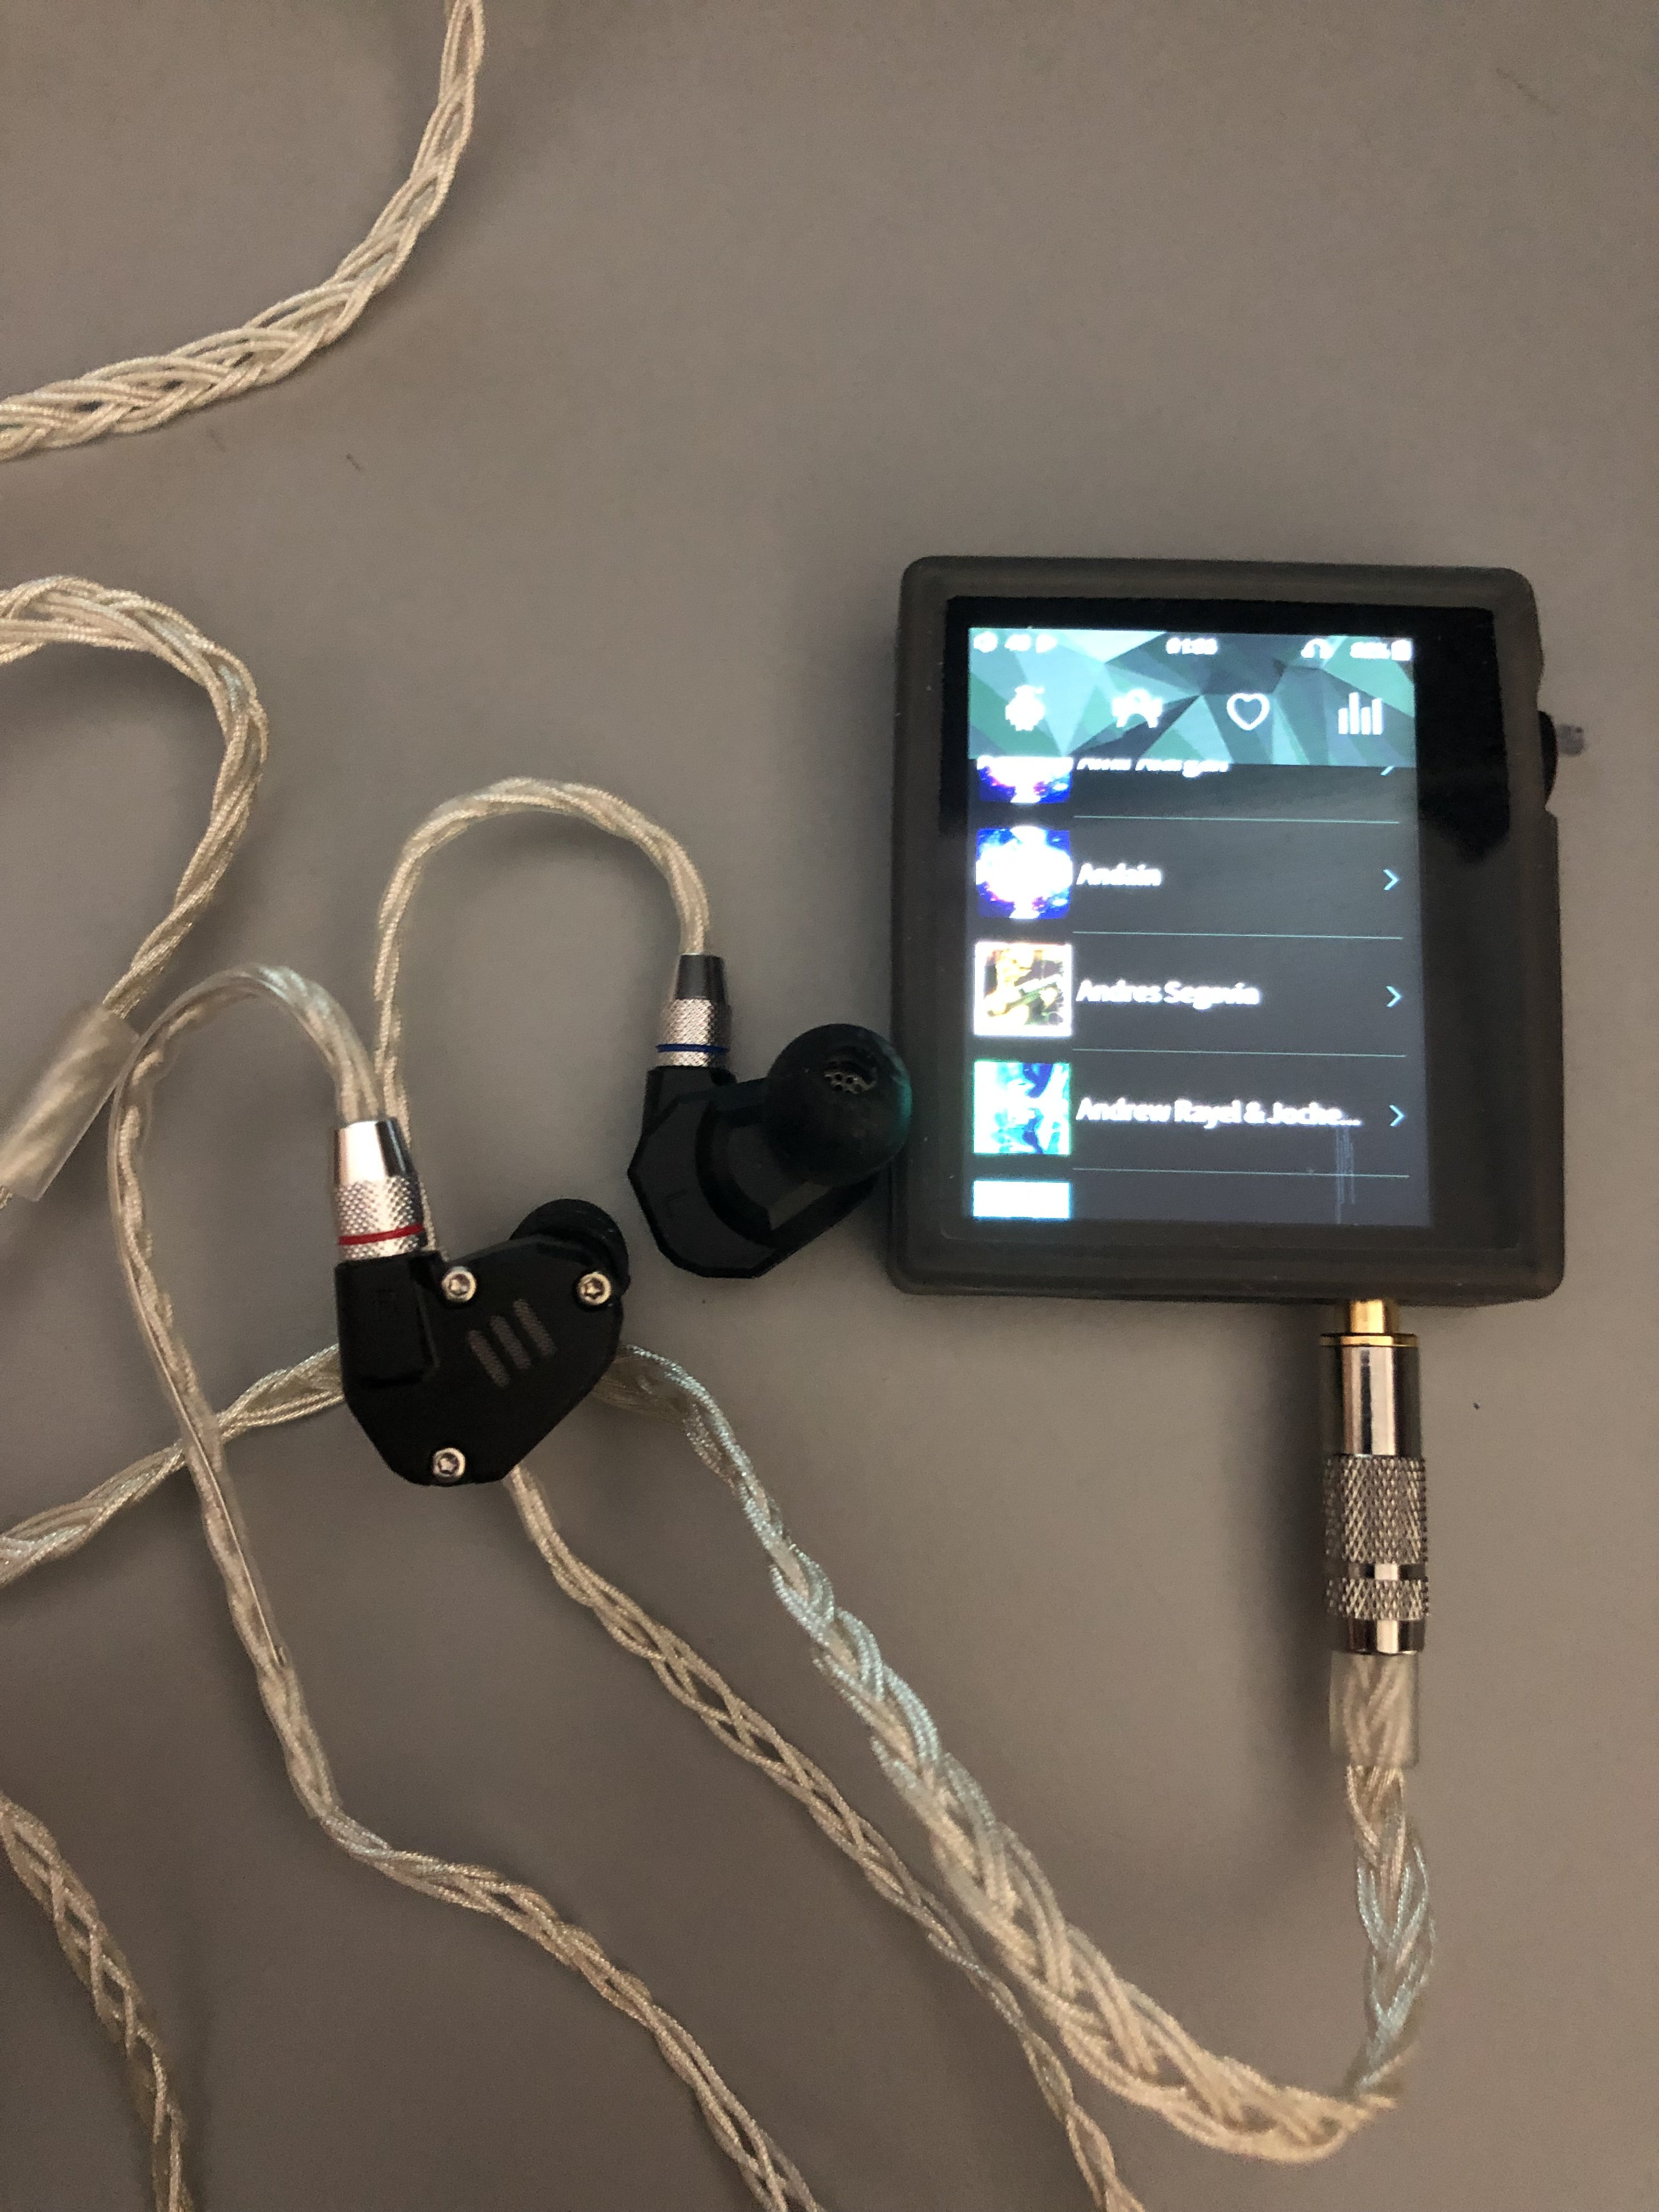 Knowledge Zenith Kz Impressions Thread Page 2906 Headphone Reviews And Discussion Head Fi Org